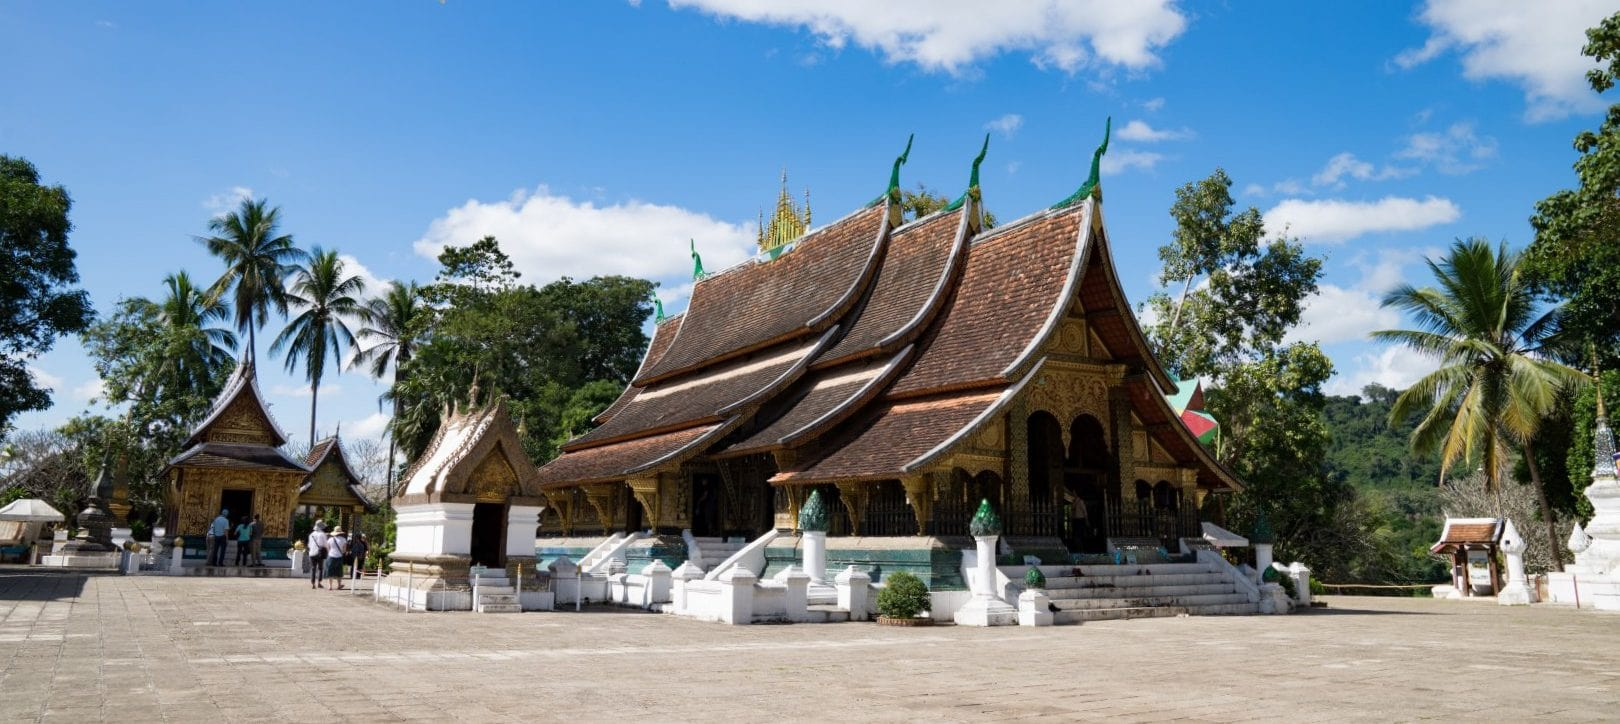 Luang Prabang tours from Italy and Spain